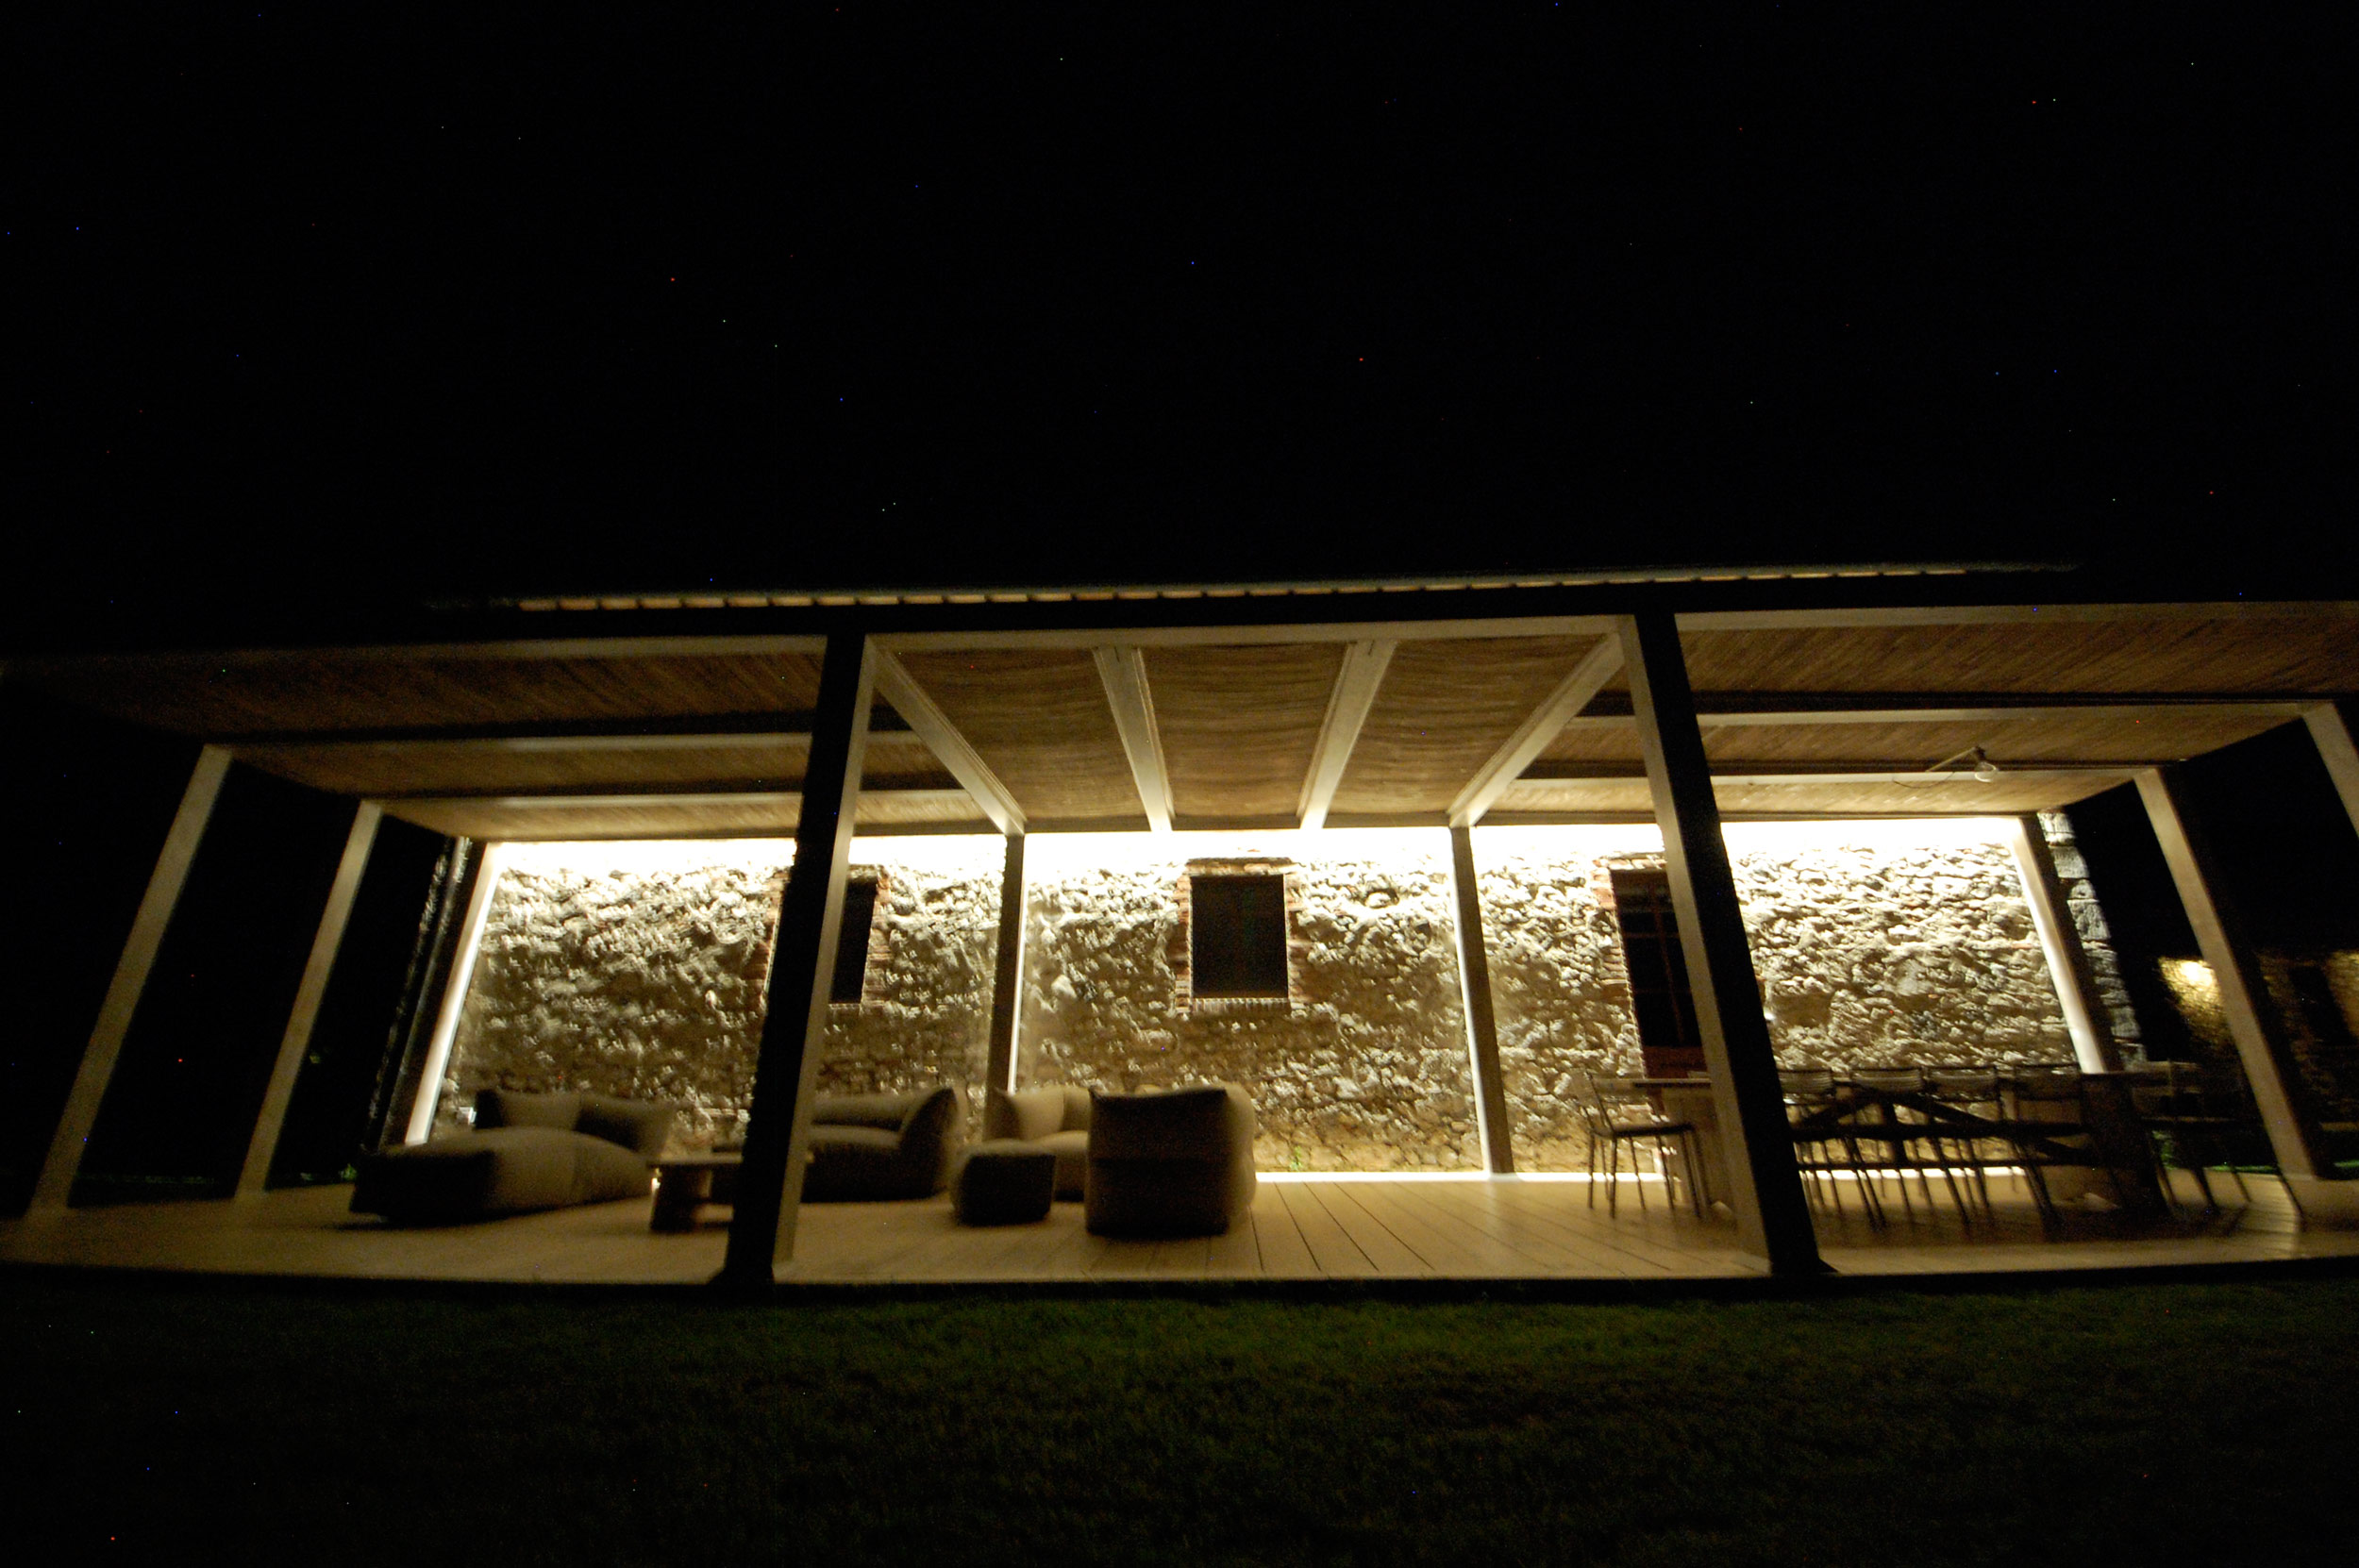 pergola tuscan villa by night